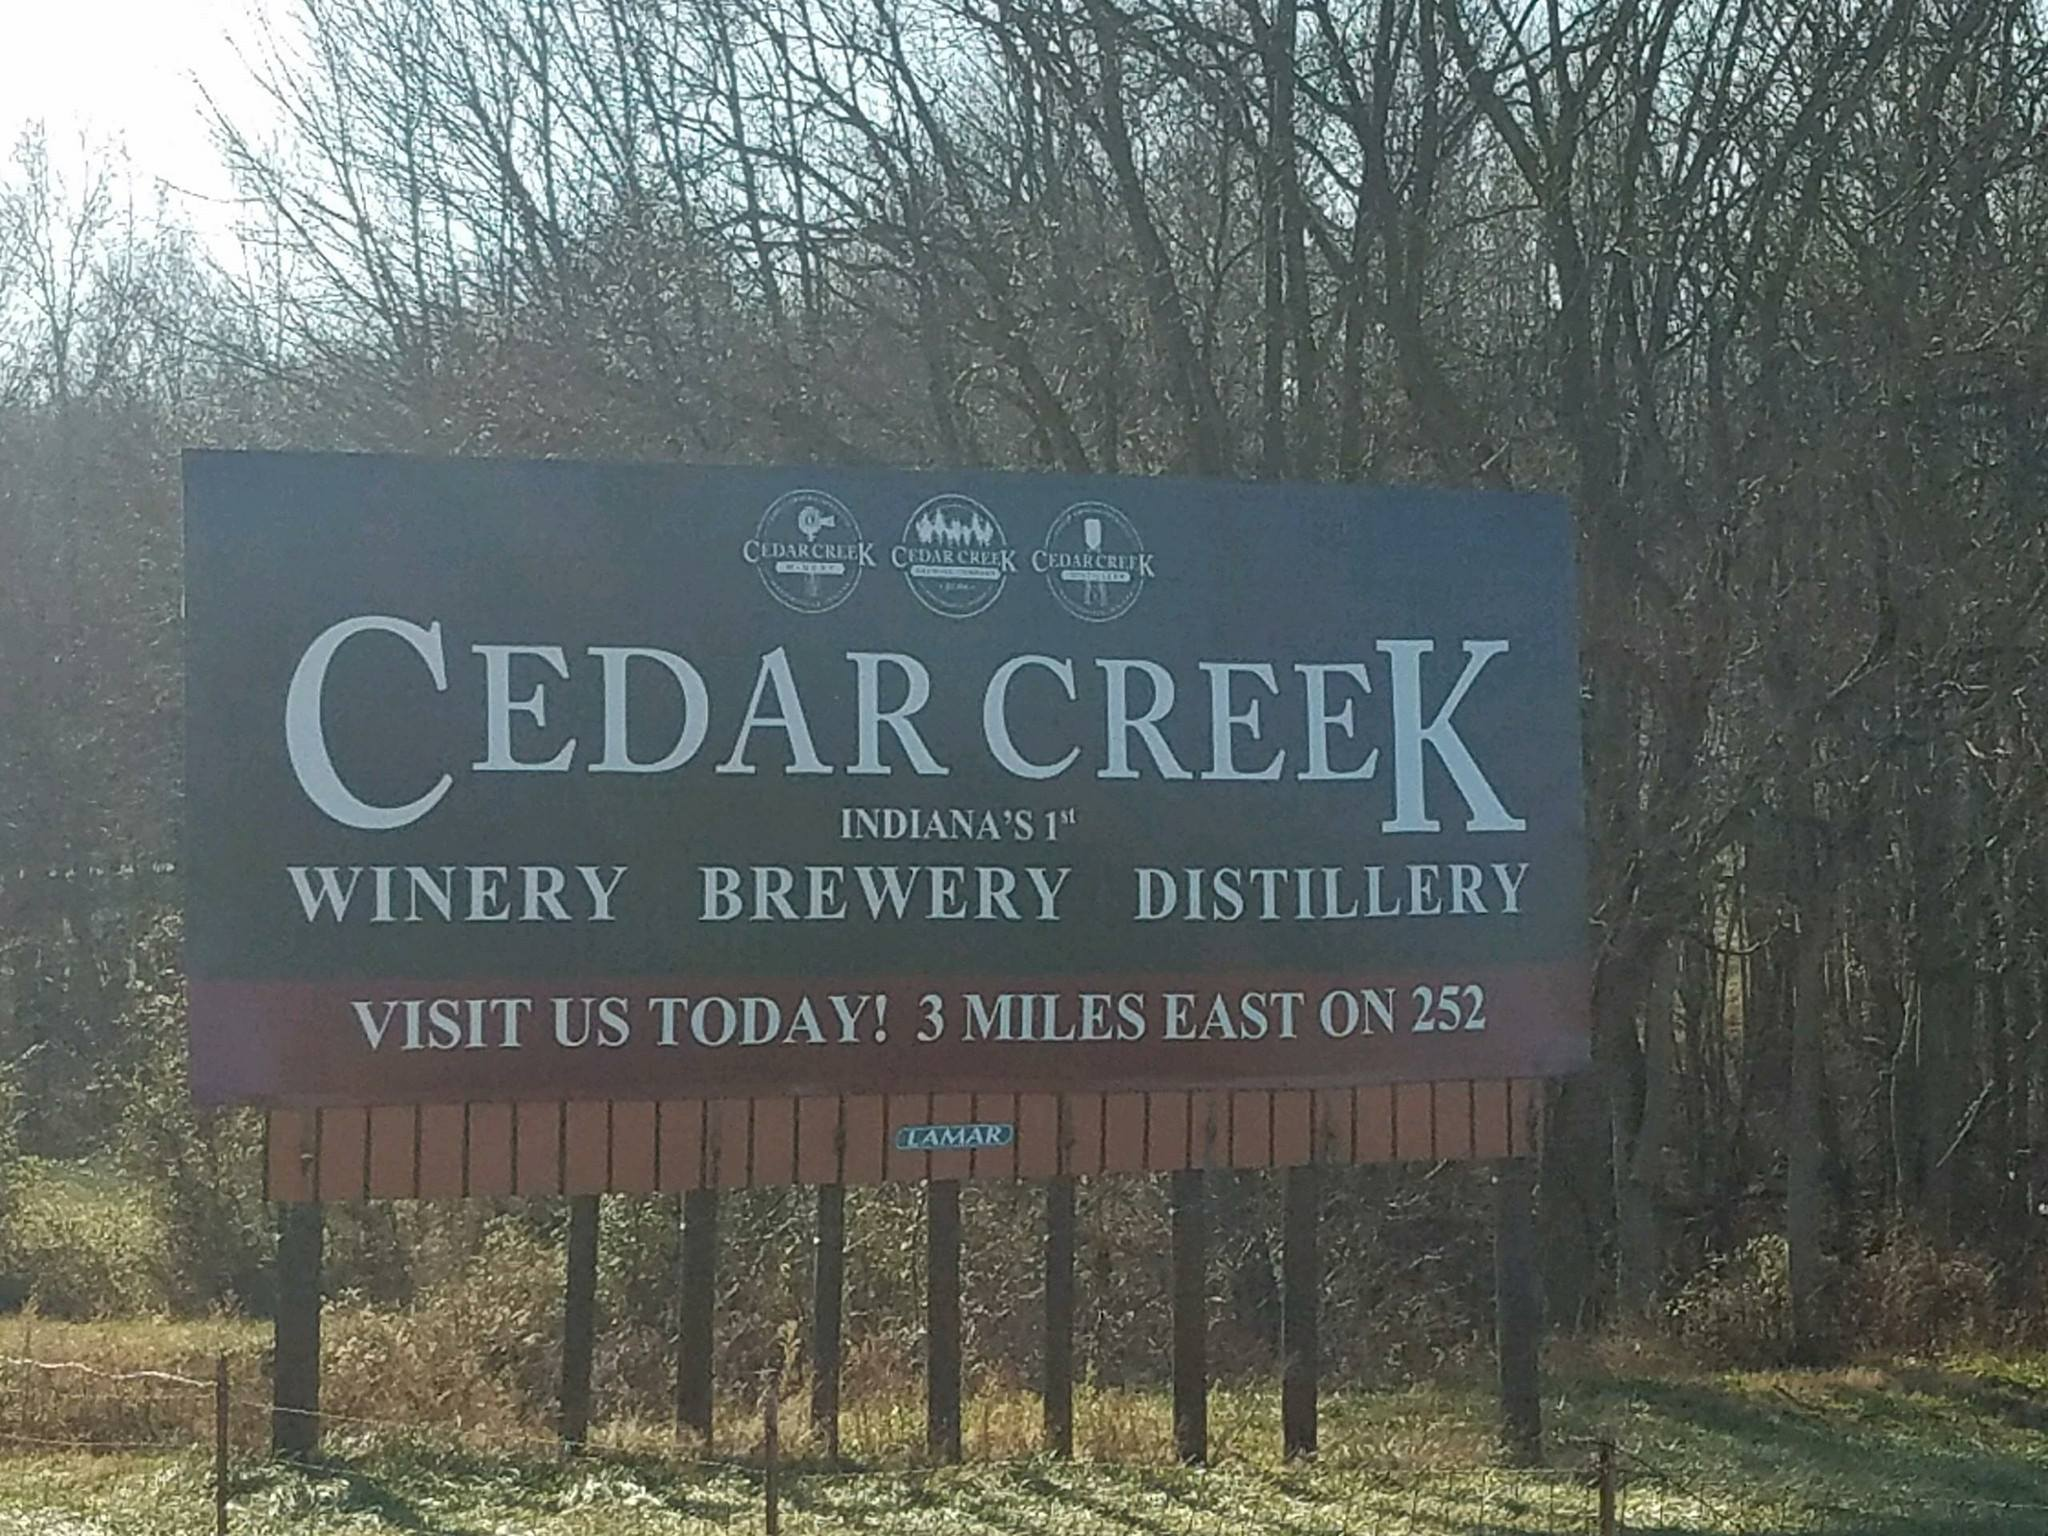 Cedar Creek Winery, Distillery and Brewery Main Image